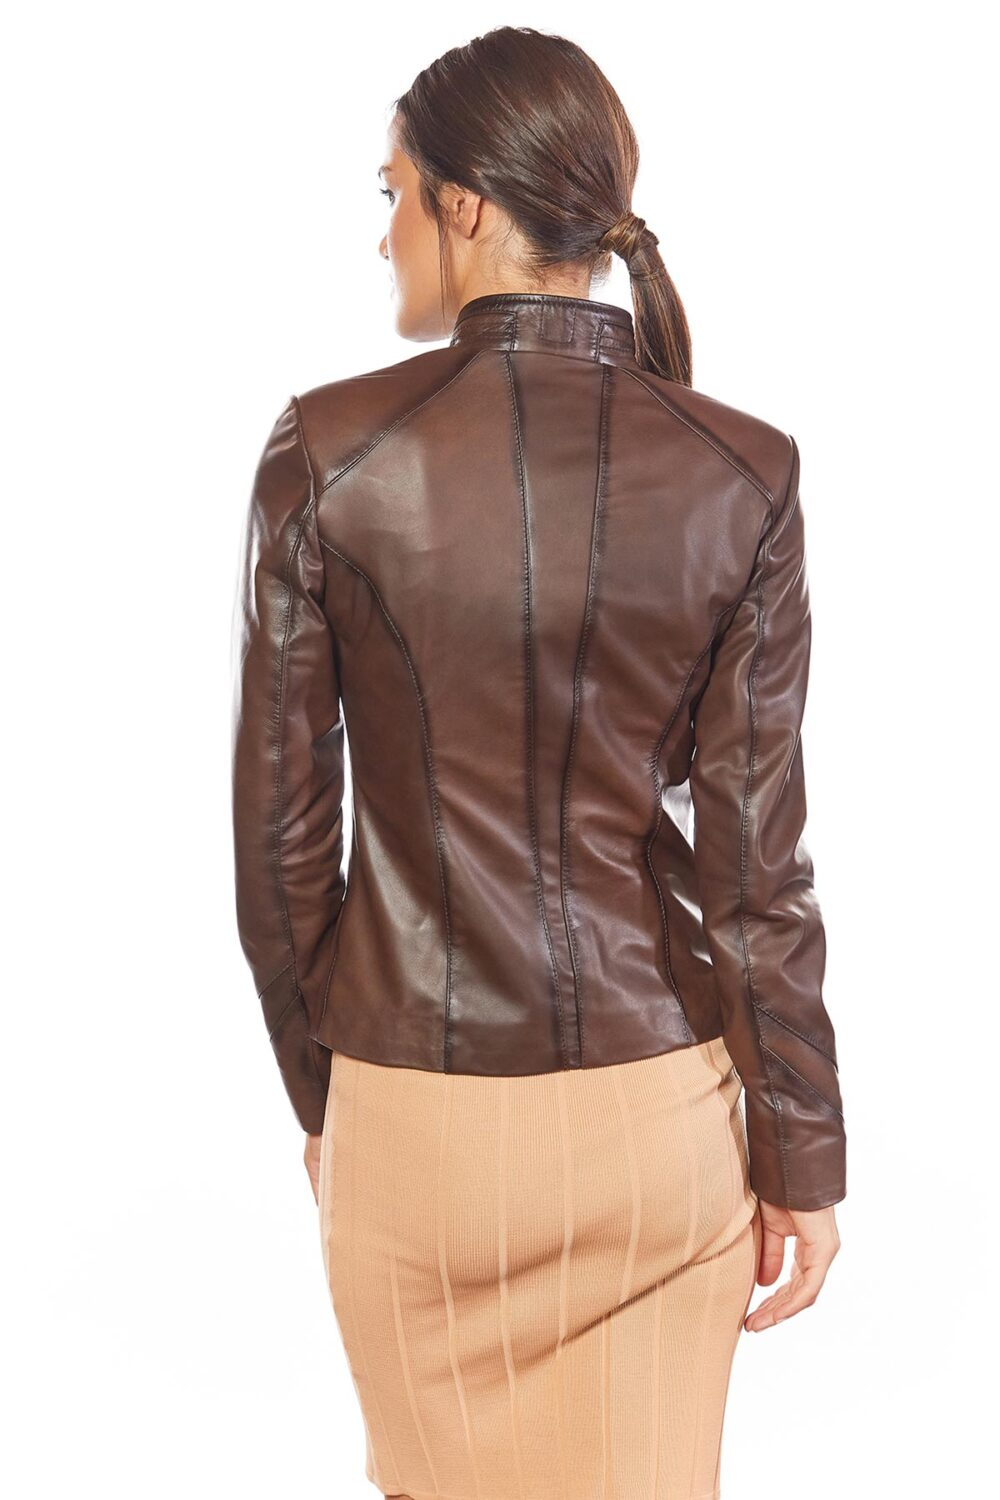 is wilsons leather real leather